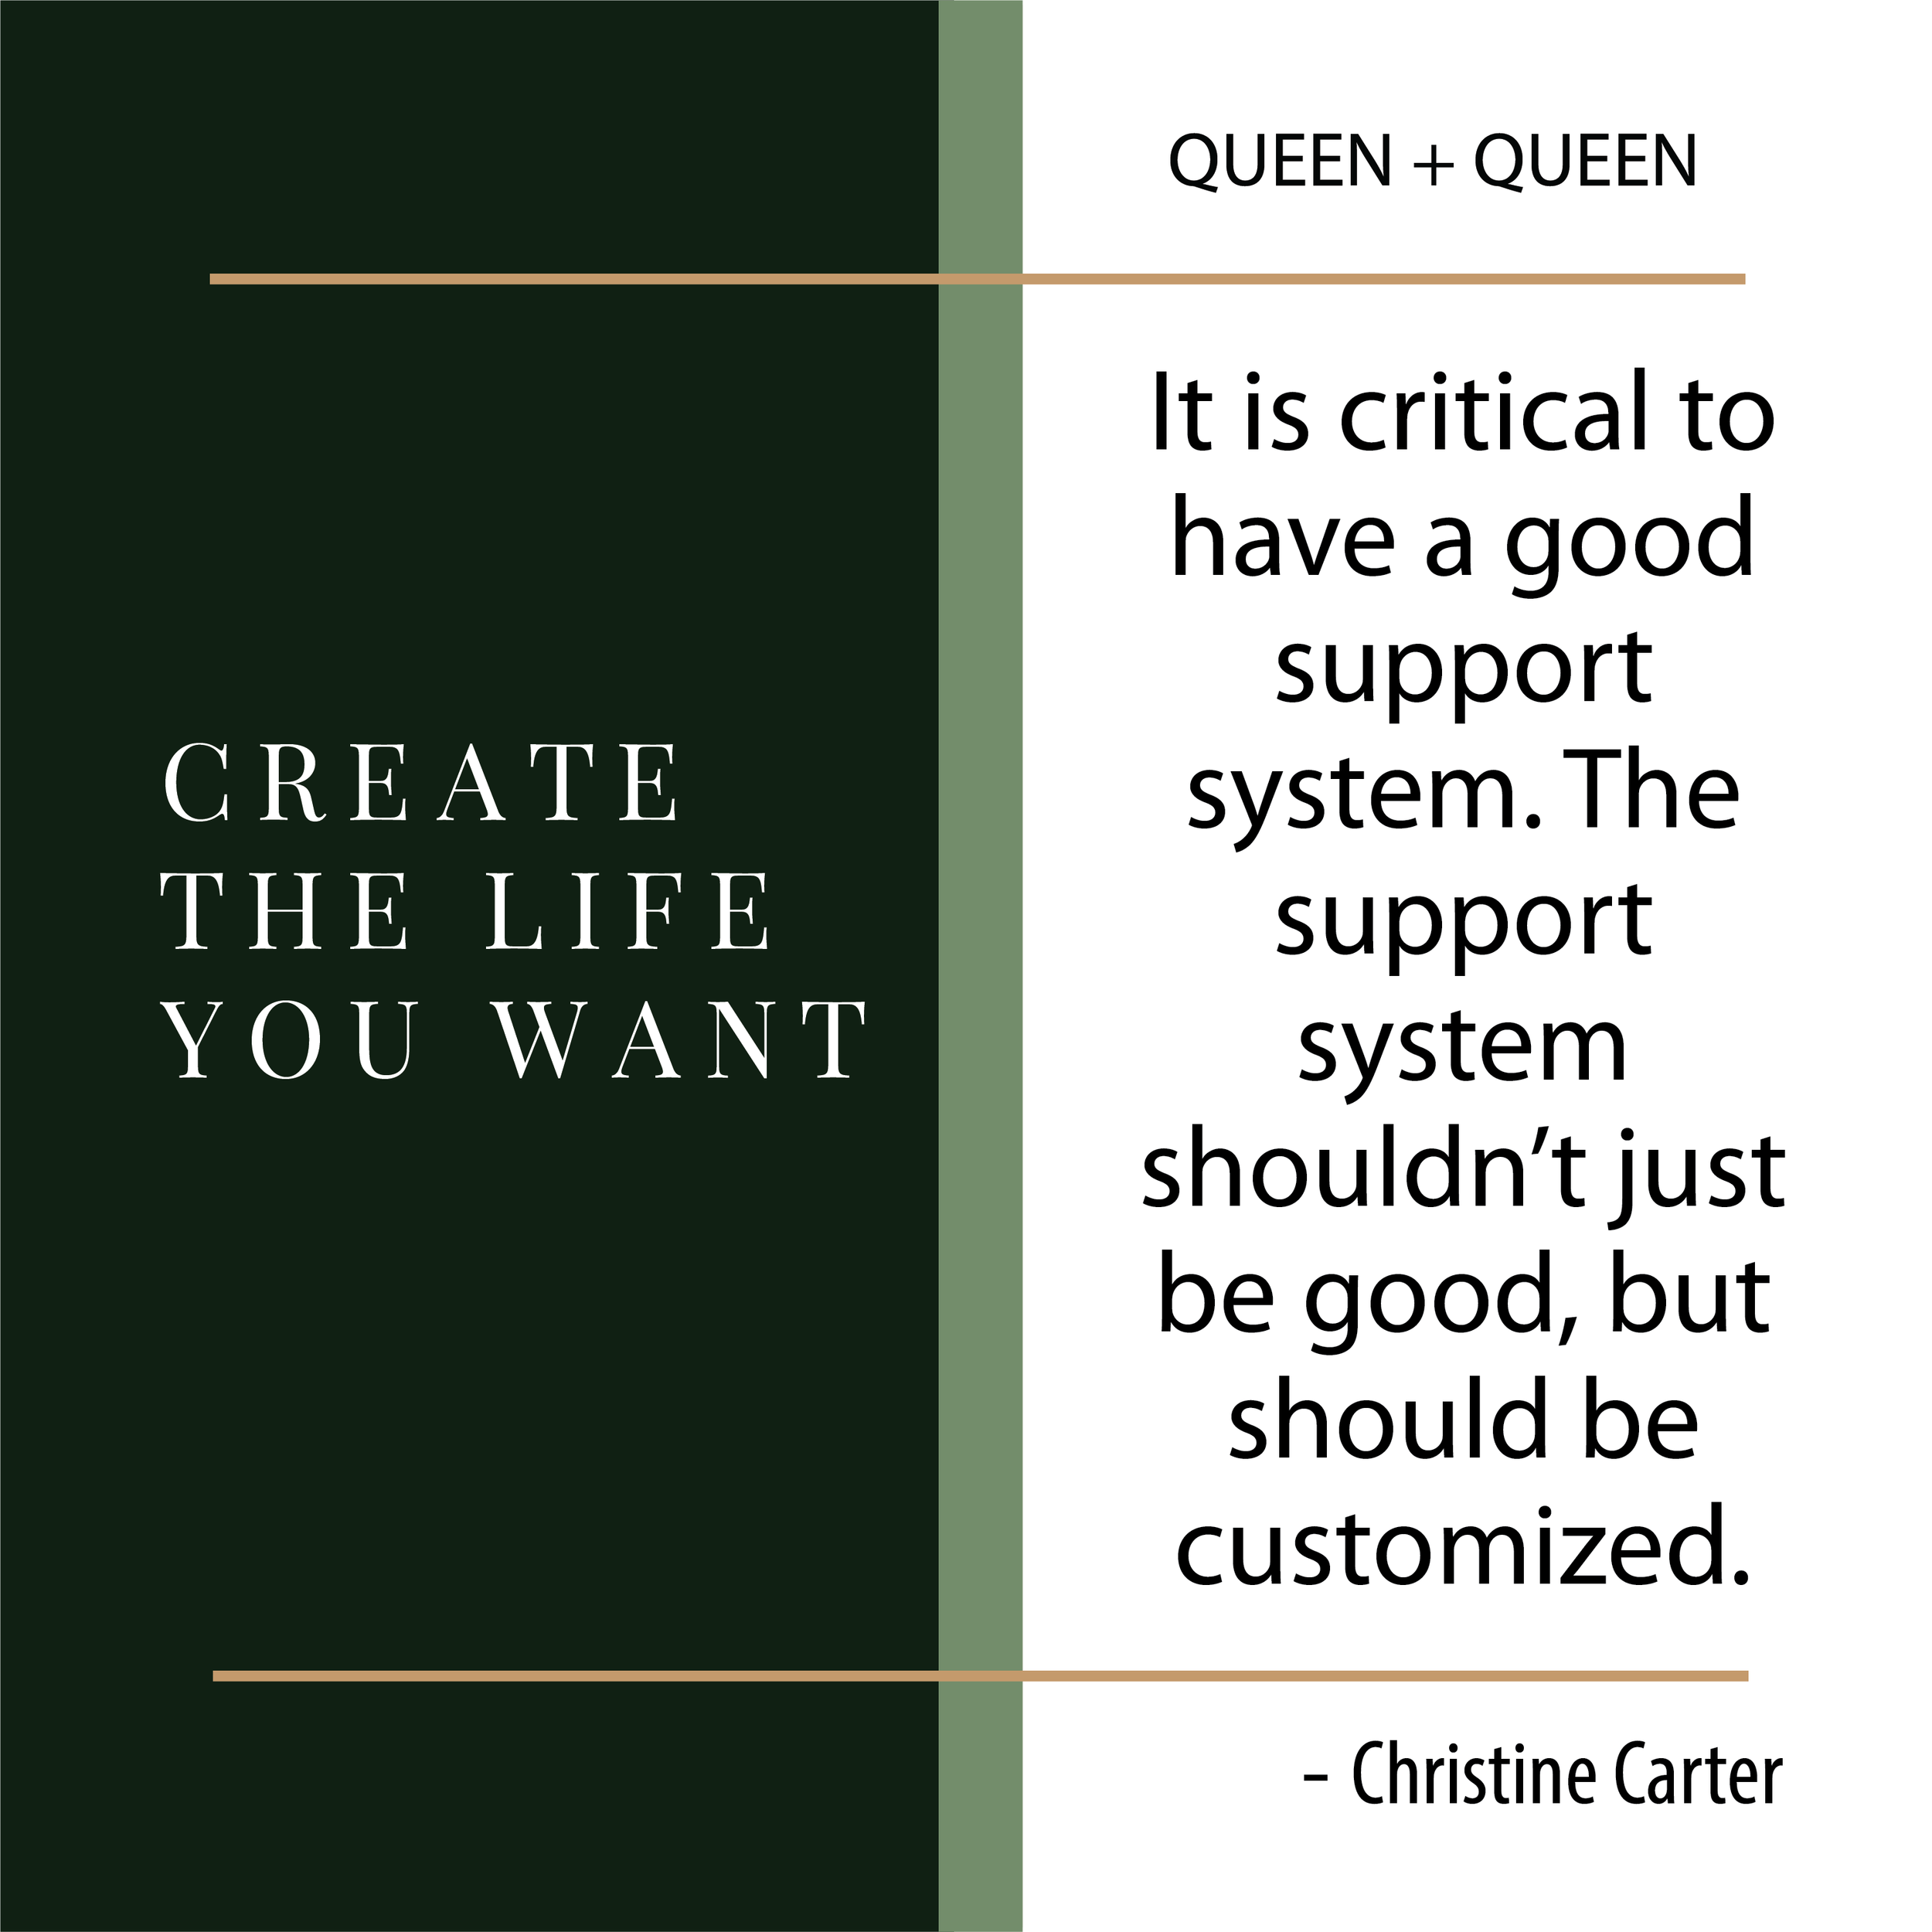 QueenPlusQueen_July 2019_Christine Carter_Dark Green Graphic-04.PNG